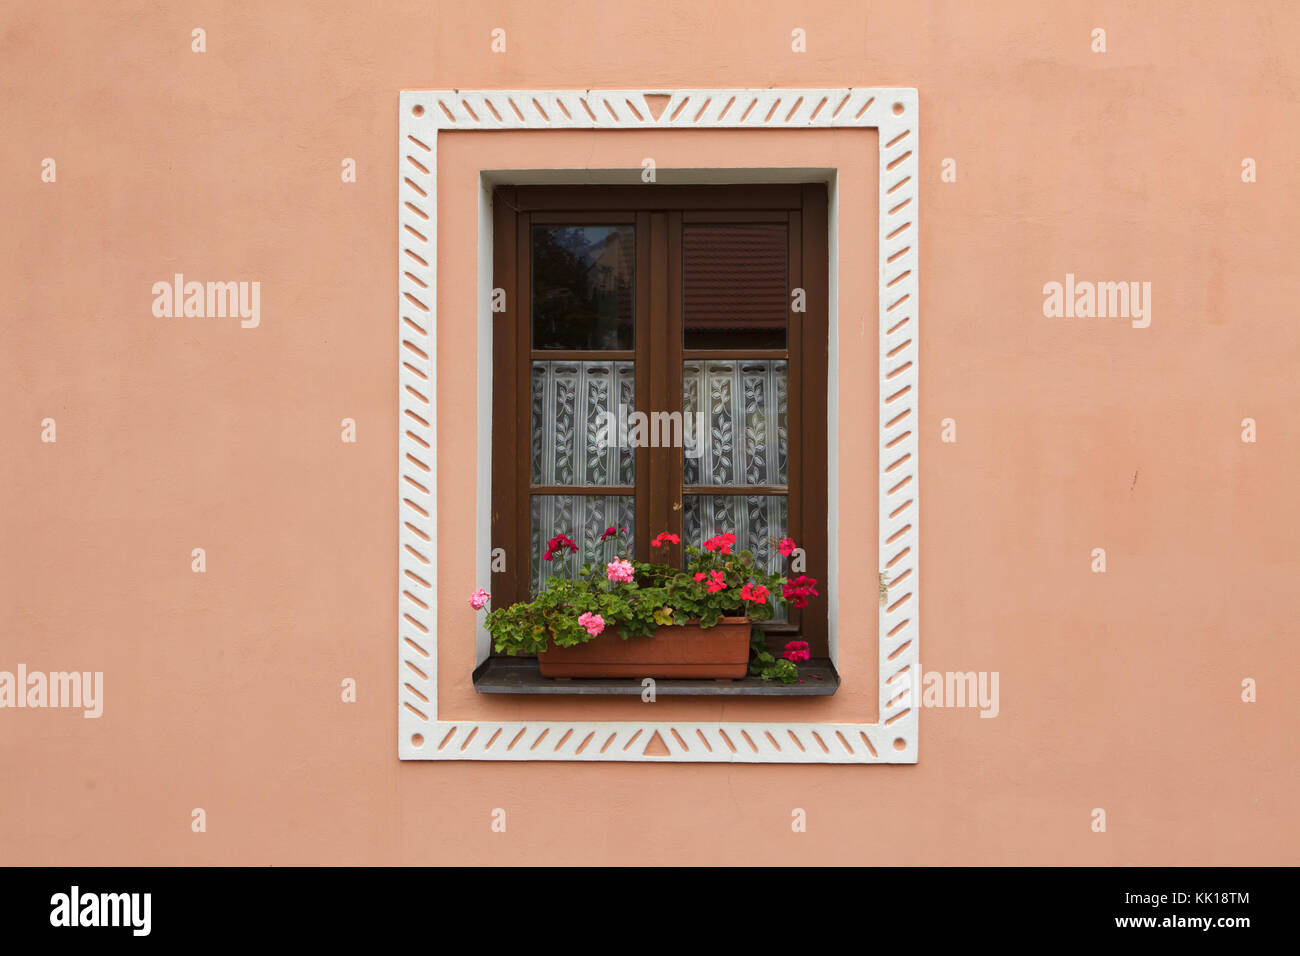 Window of one of he houses in Rural Baroque style in the historical village of Holašovice in South Bohemia, Czech - Stock Image